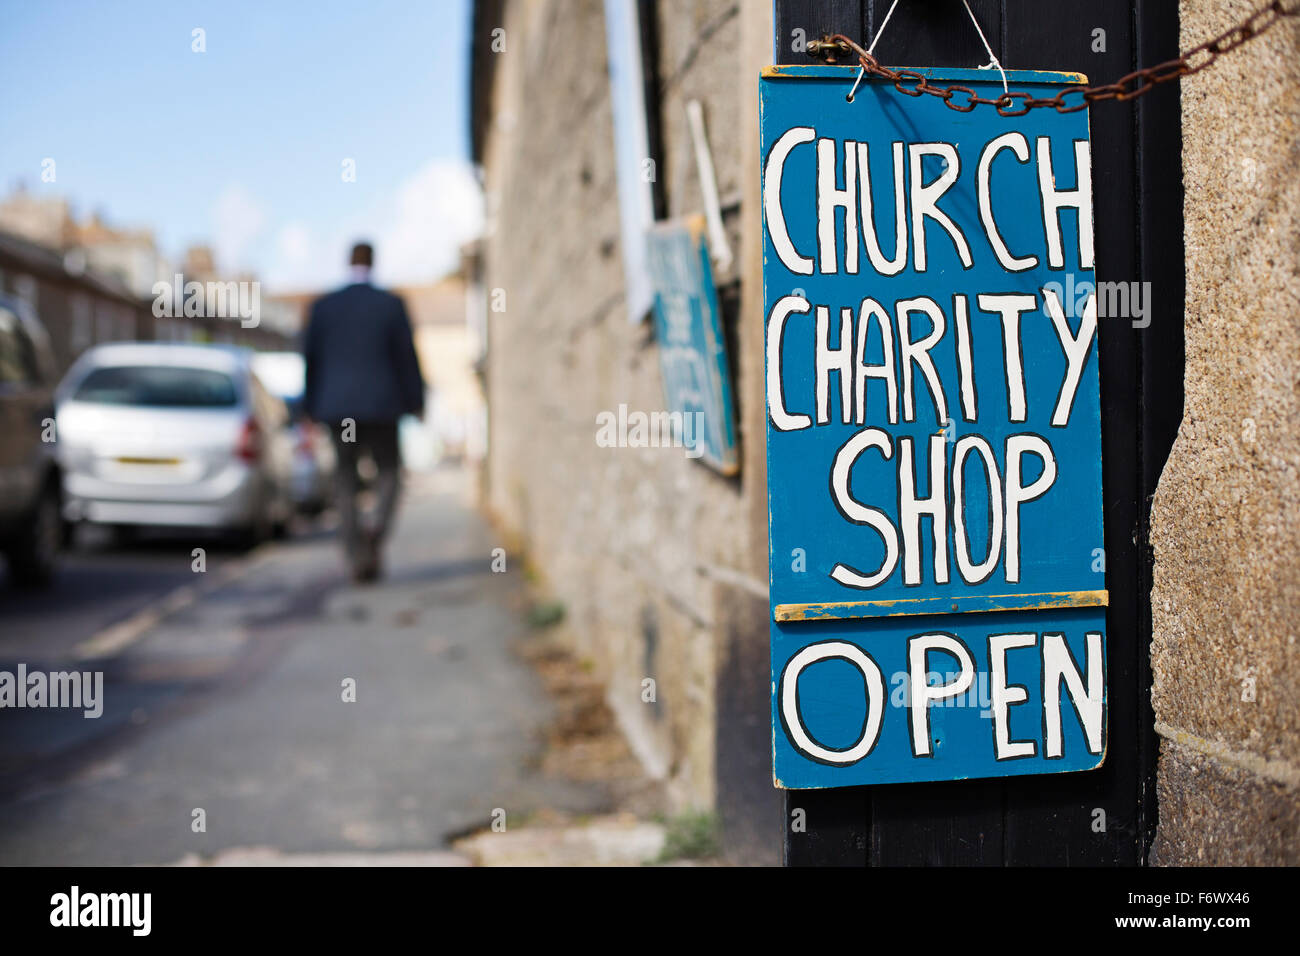 A church Charity shop in the Isles of Scilly,Cornwall - Stock Image